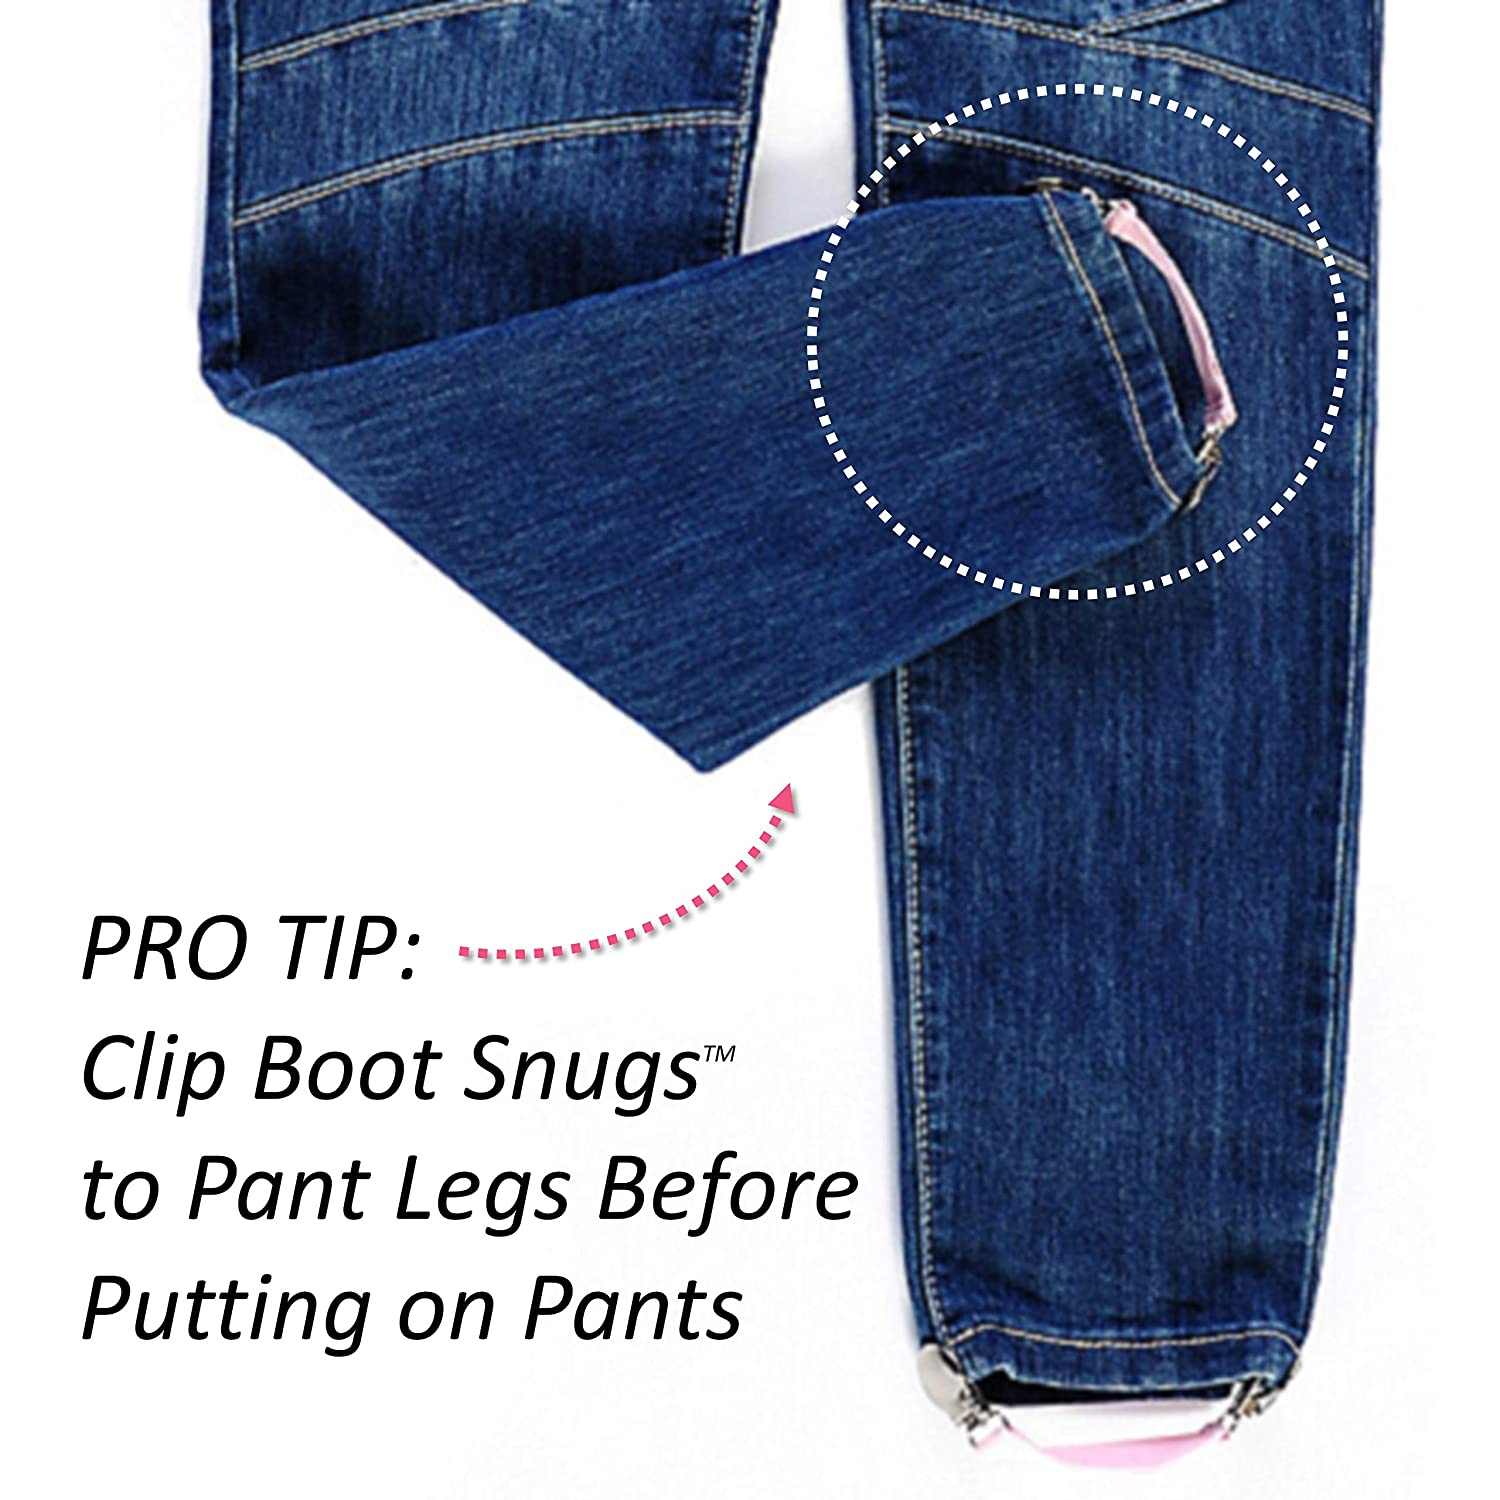 Black-3 Boot Straps Boot Snugs Pant Clips The Original Boot Clips Pant Stirrups for Smooth Jeans in Boots